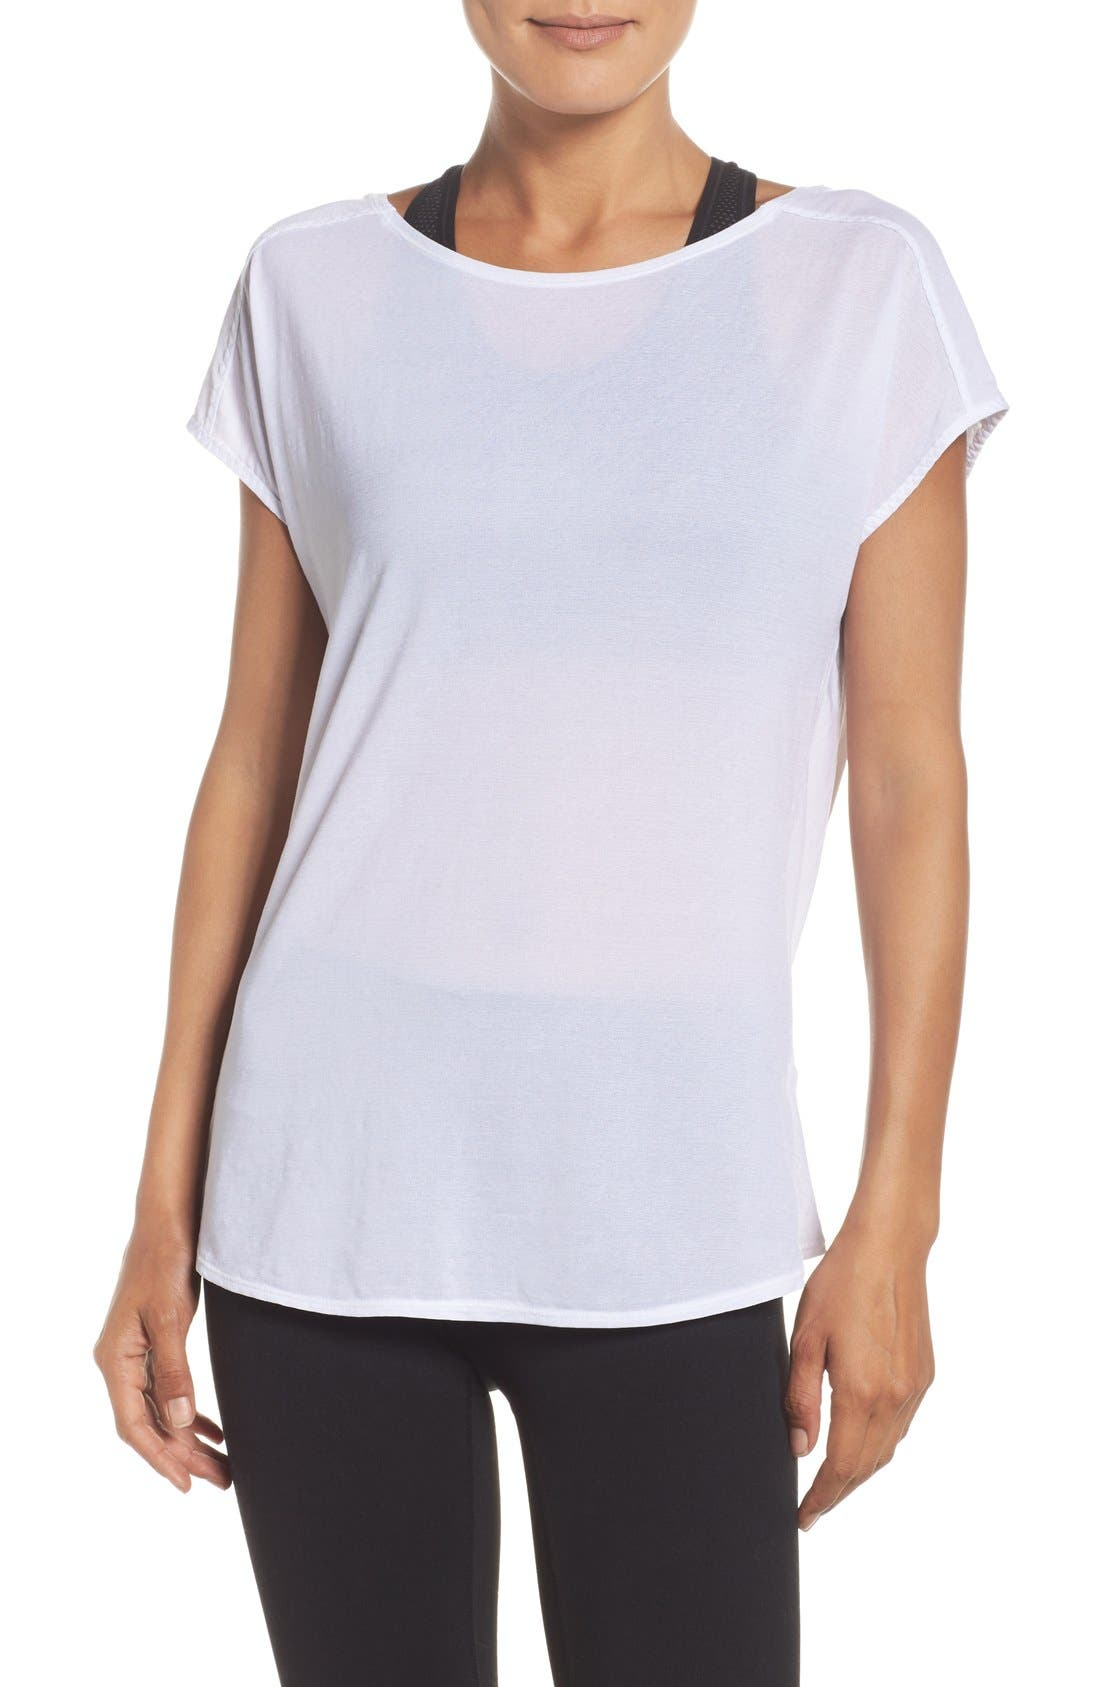 Alternate Image 1 Selected - Zella Arabesque Convertible Tee